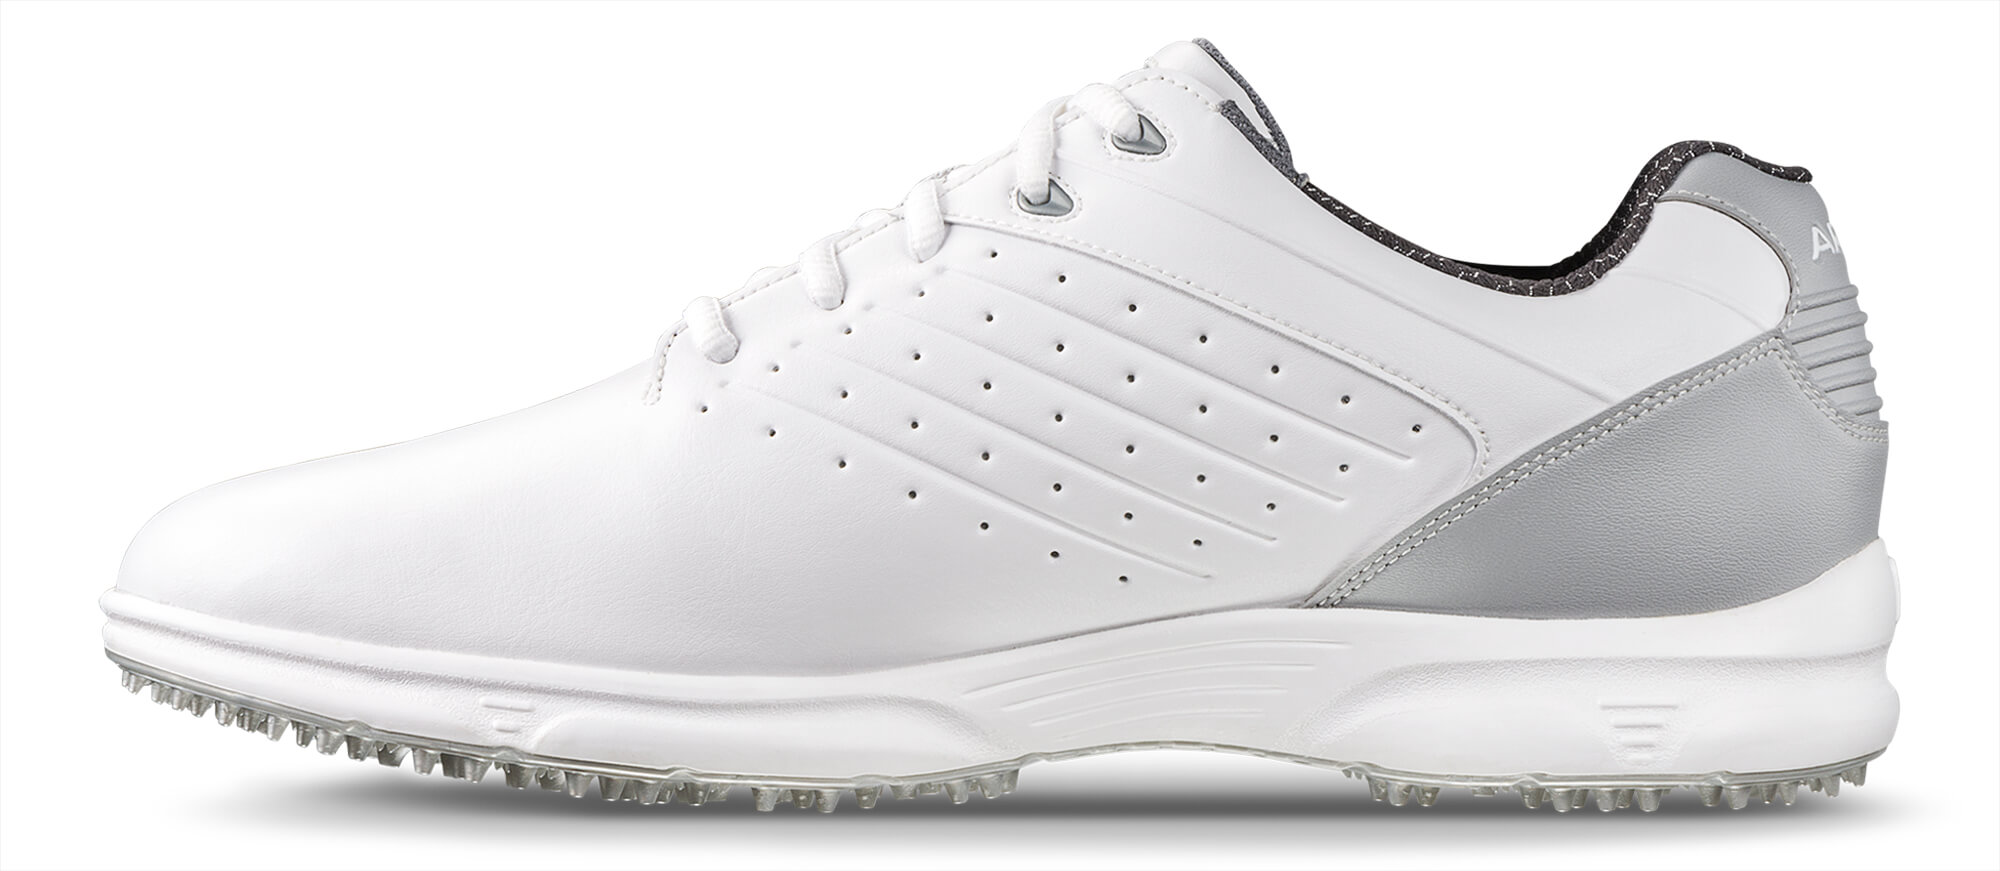 FootJoy-FJ-Arc-SL-Golf-Shoes-Men-039-s-Spikeless-Waterproof-New-Choose-color thumbnail 14